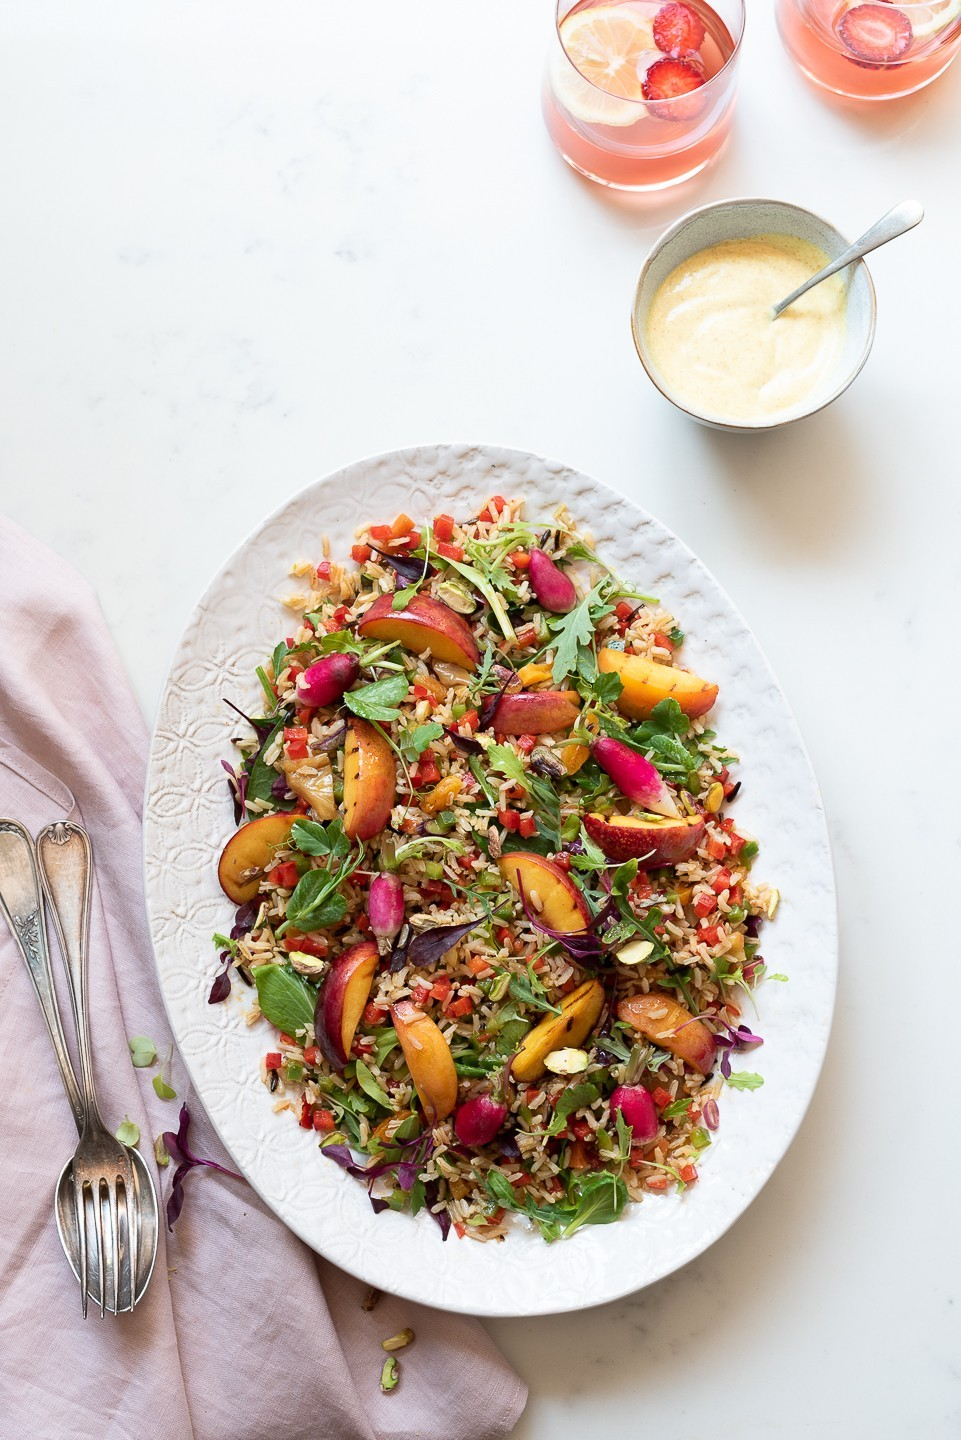 Wild rice salad with sweet peppers | Bibbyskitchen salad recipes